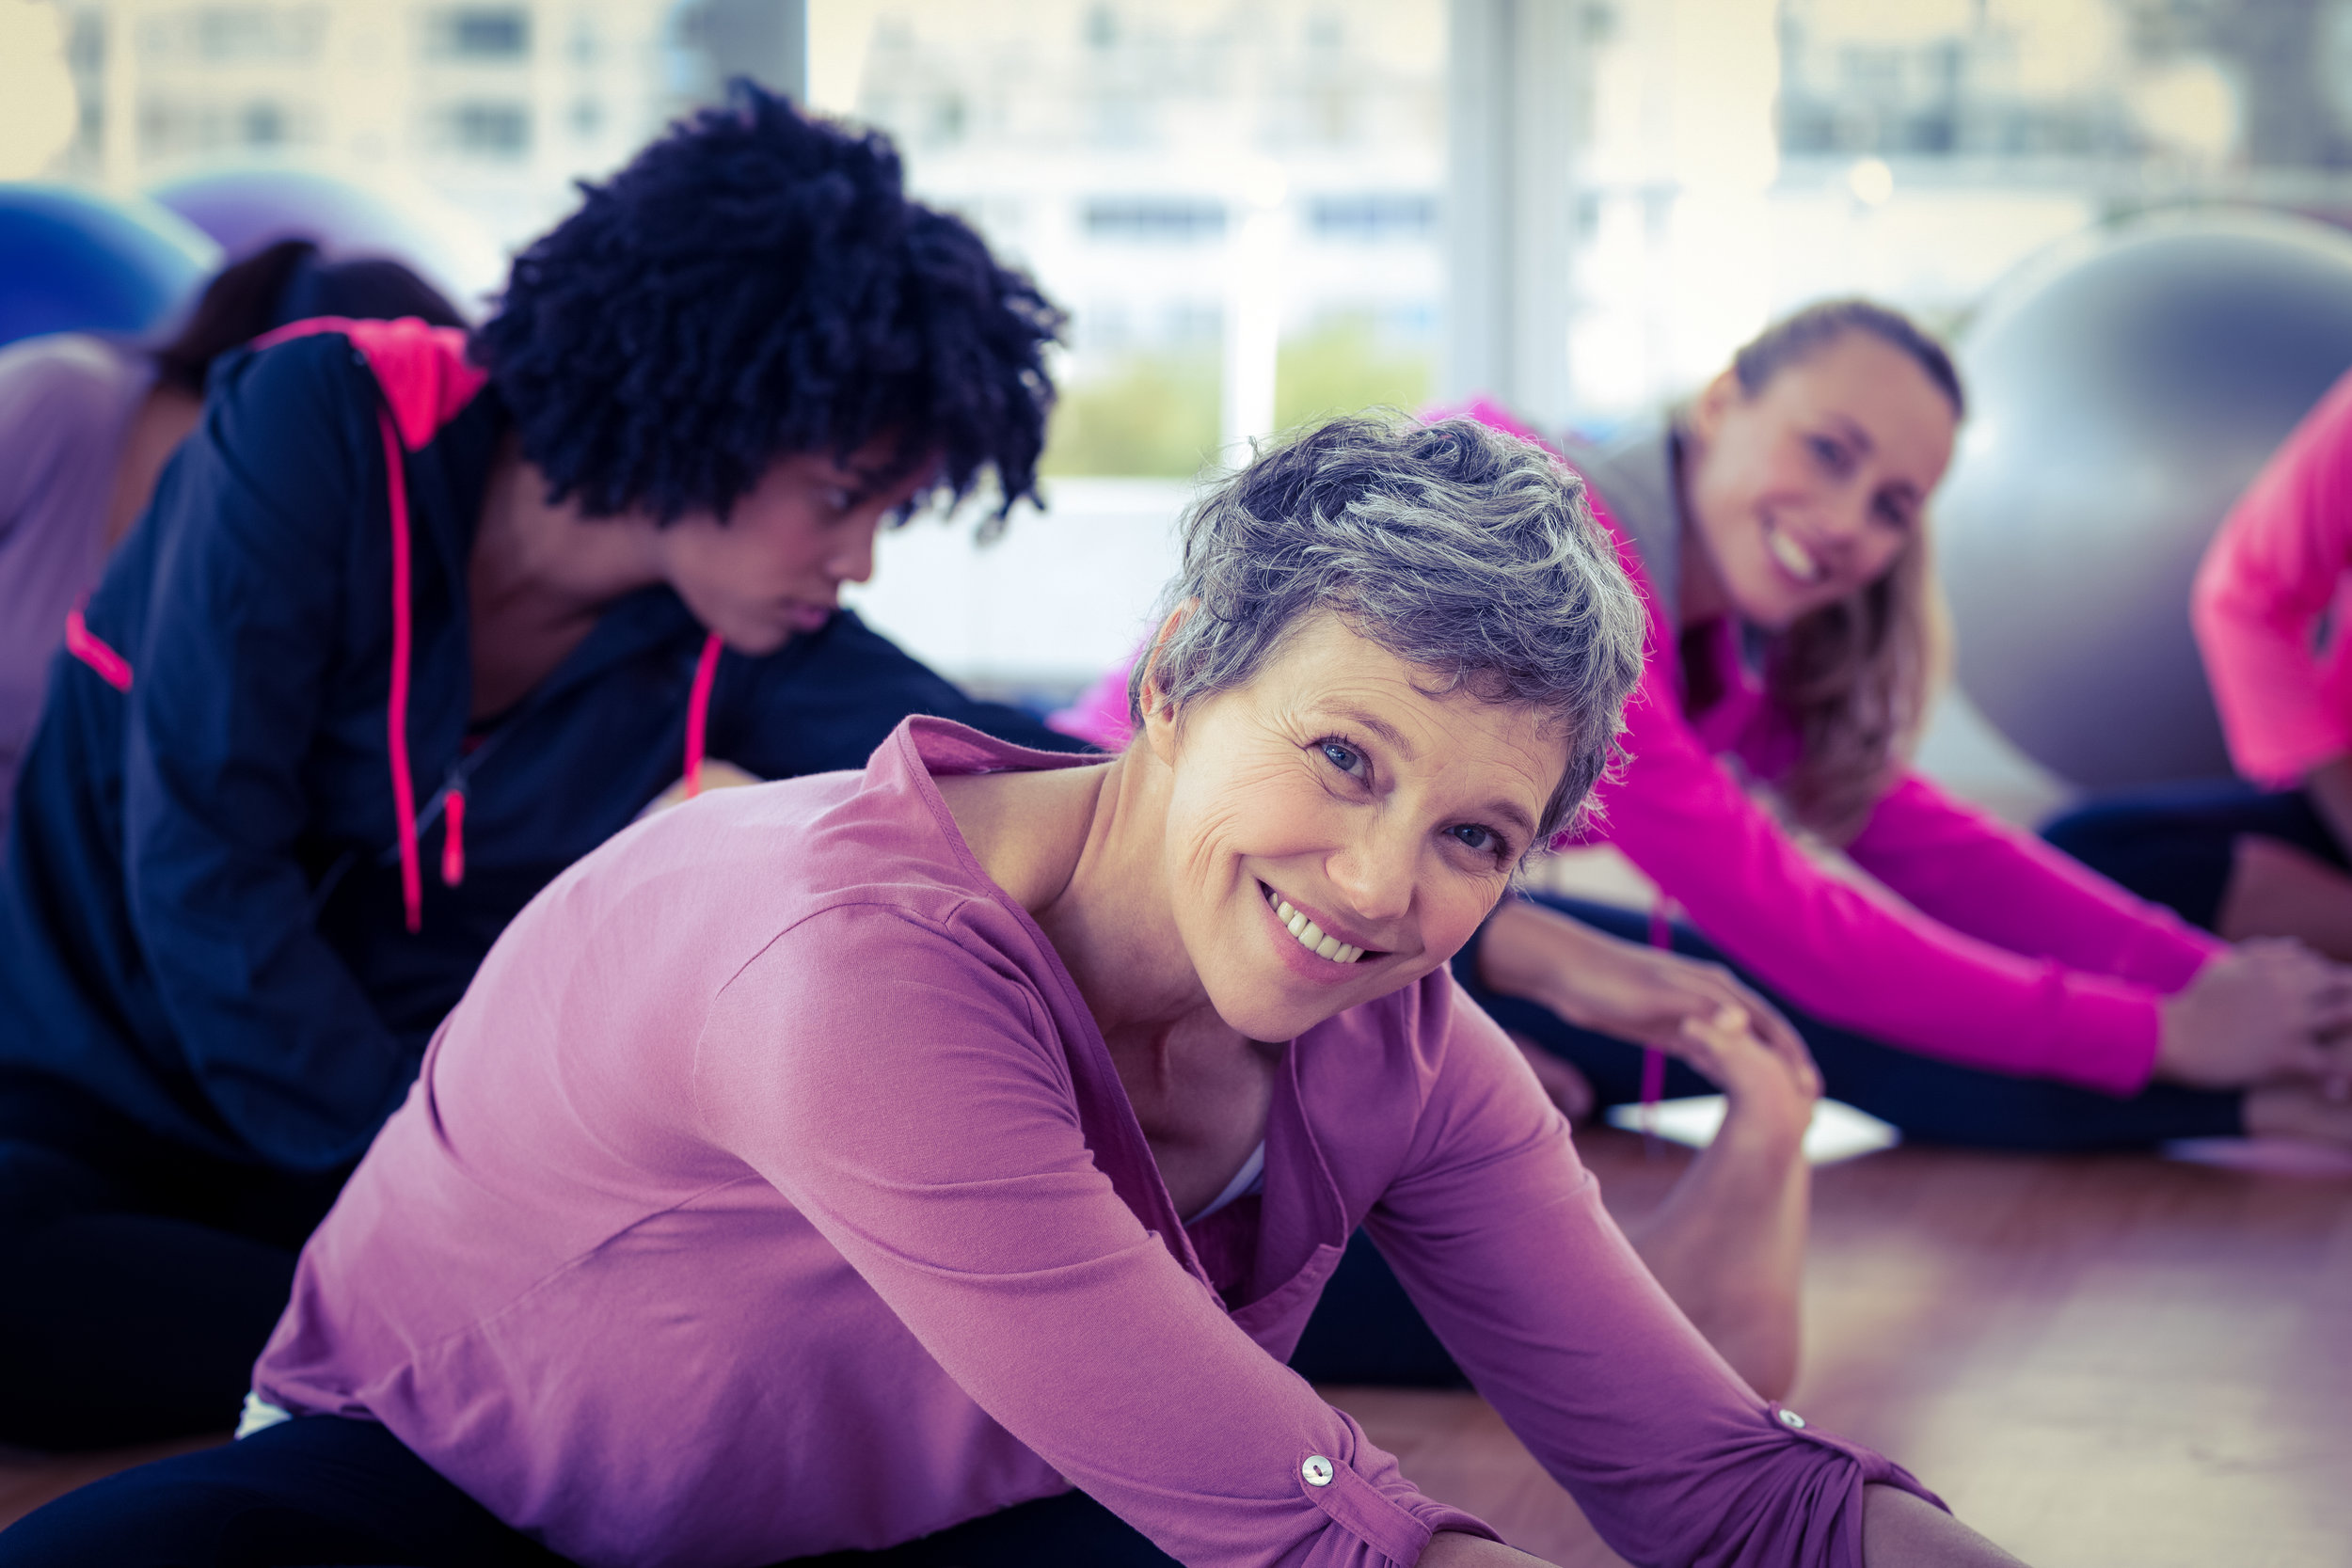 Men & women of all ages come to a class that will help you get rid of chronic pain through alignment based exercises at the Functional Motion Class taught by Stasia and Pain Free Clinic of Denver.